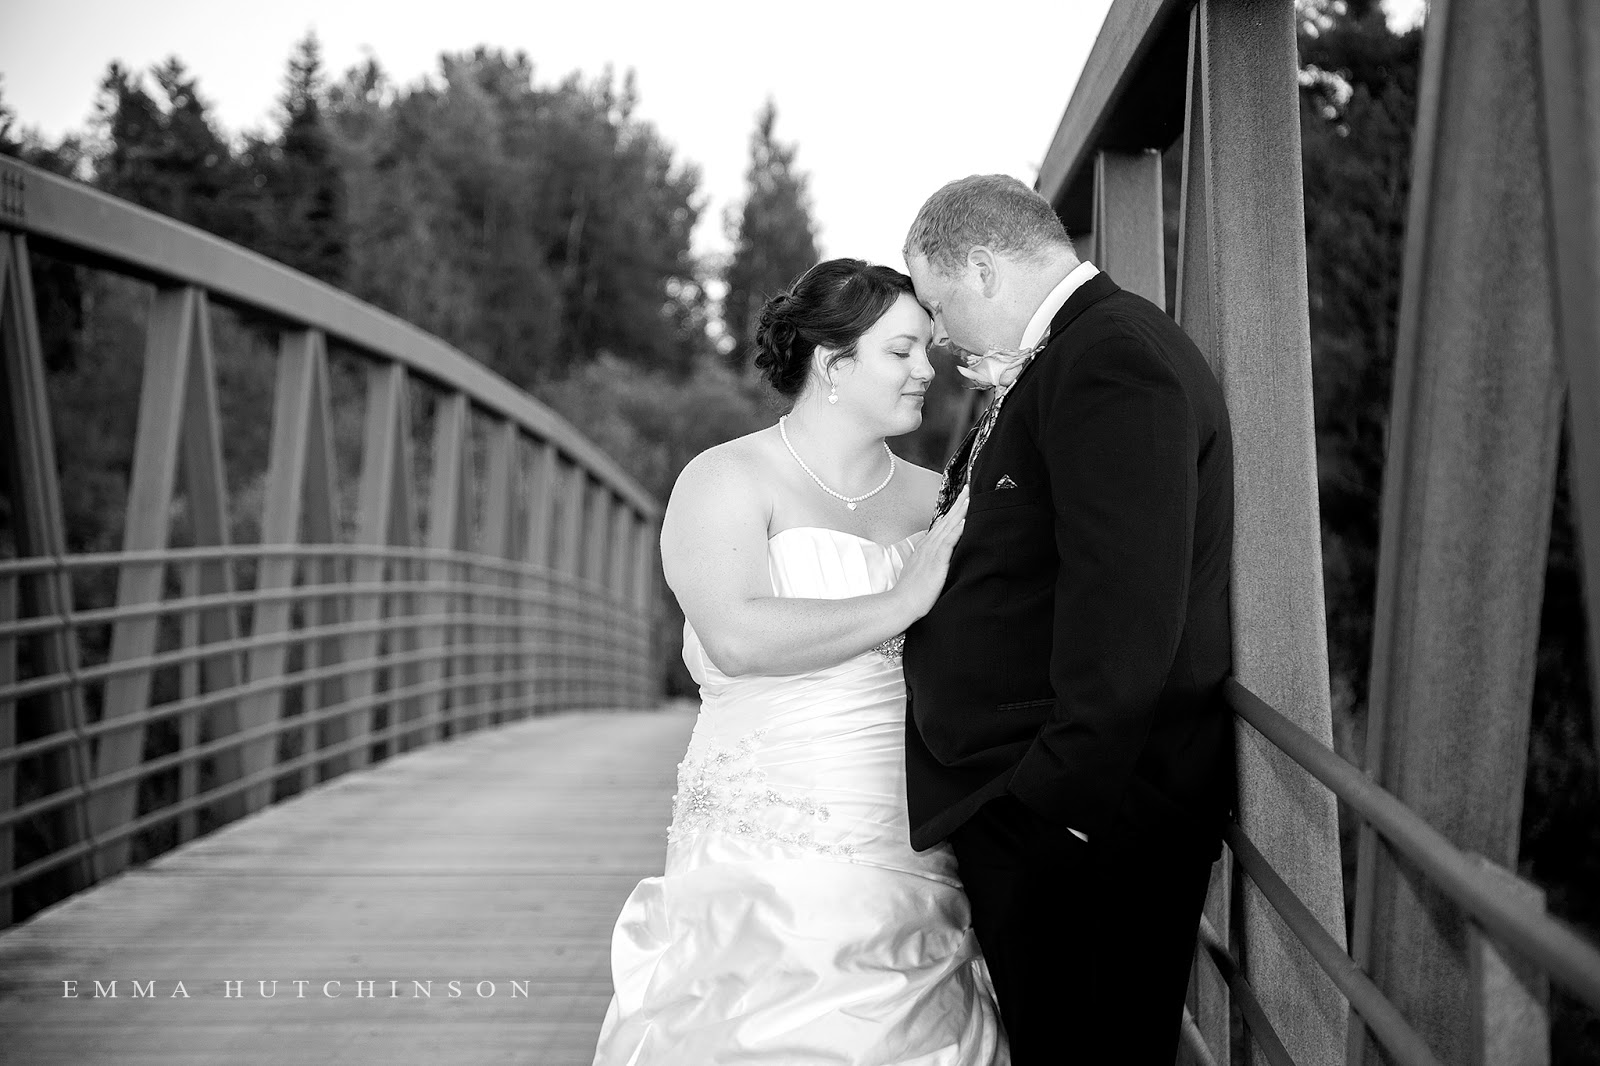 Weddings at Grand Falls Golf Club photographed by Emma Hutchinson